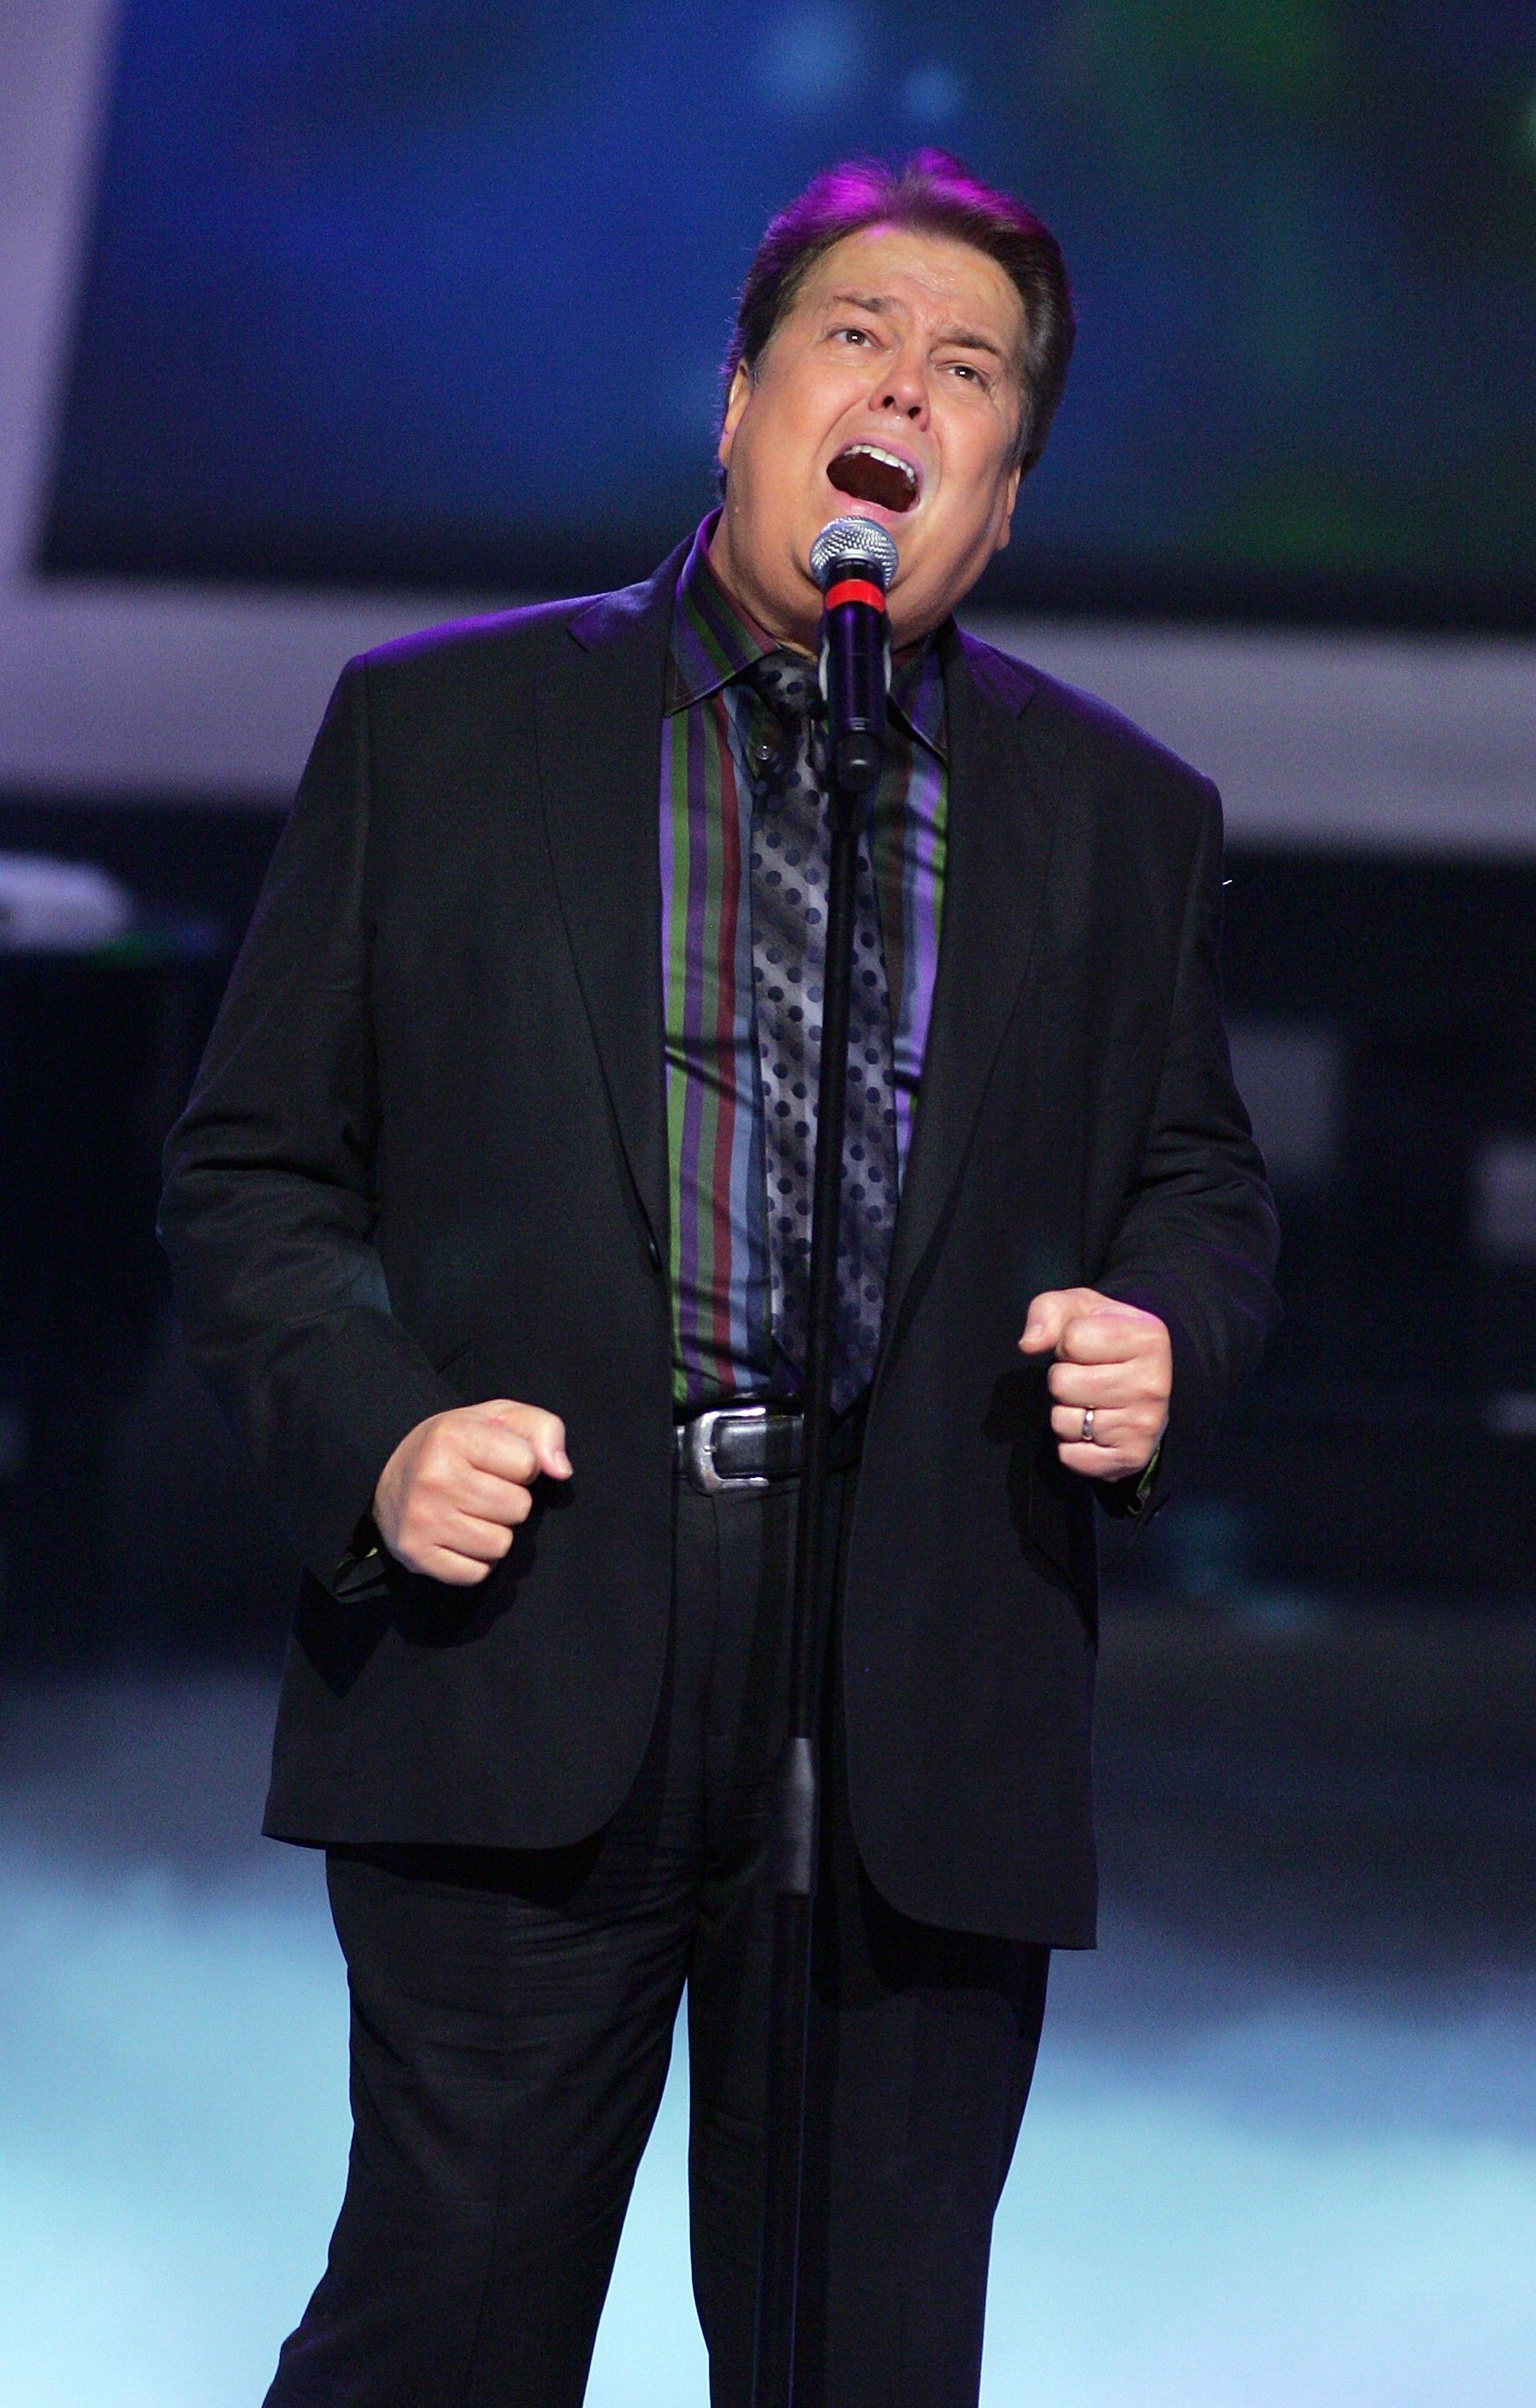 Alan Osmond on August 14, 2007 in Las Vegas, Nevada | Source: Getty Images